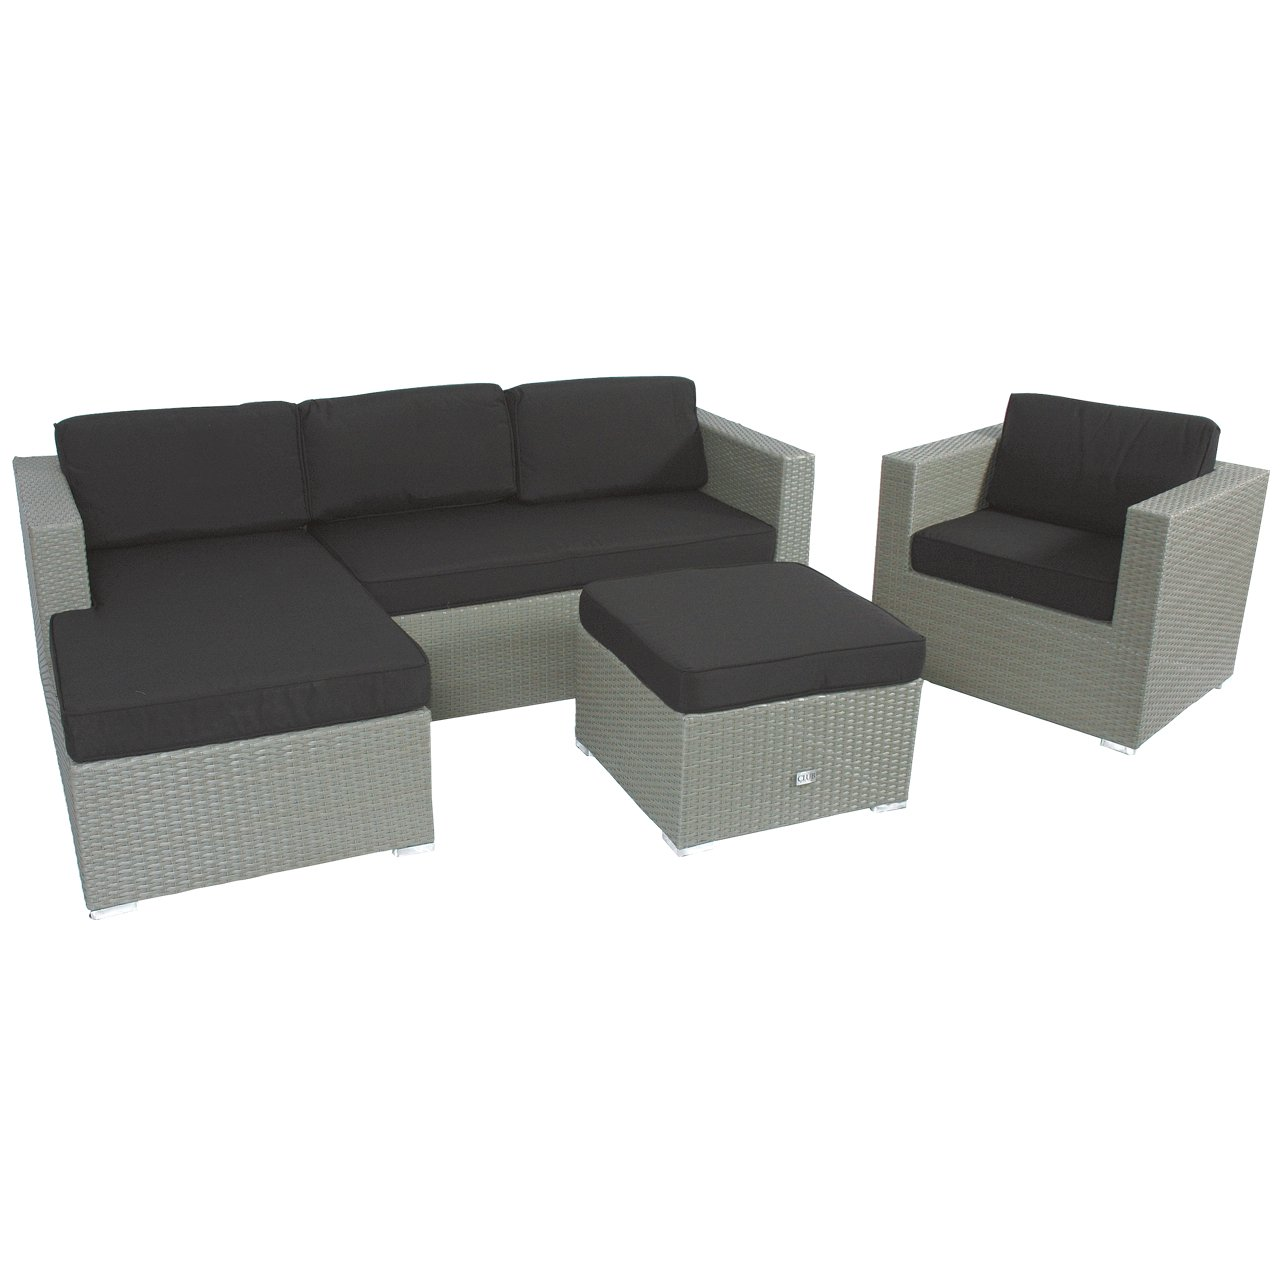 poly rattan ecklounge set 3tlg grau gartenm bel hocker stuhl g nstig kaufen. Black Bedroom Furniture Sets. Home Design Ideas